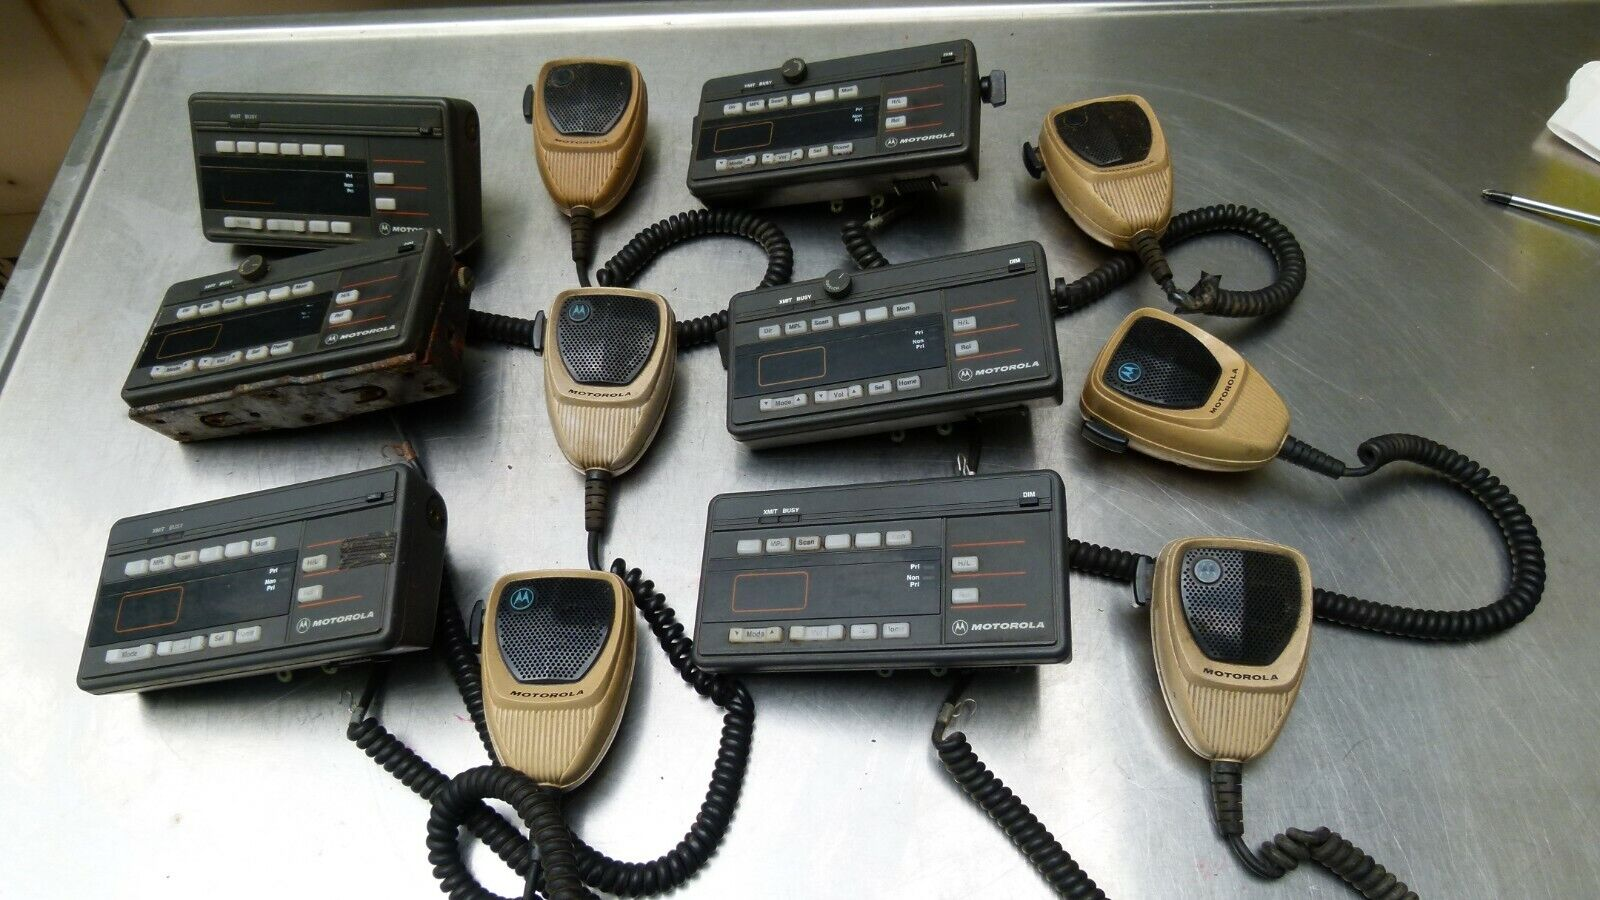 Lot of 6 - Motorola Control Head MaraTrac HCN1052B with Microphone. Available Now for 89.99